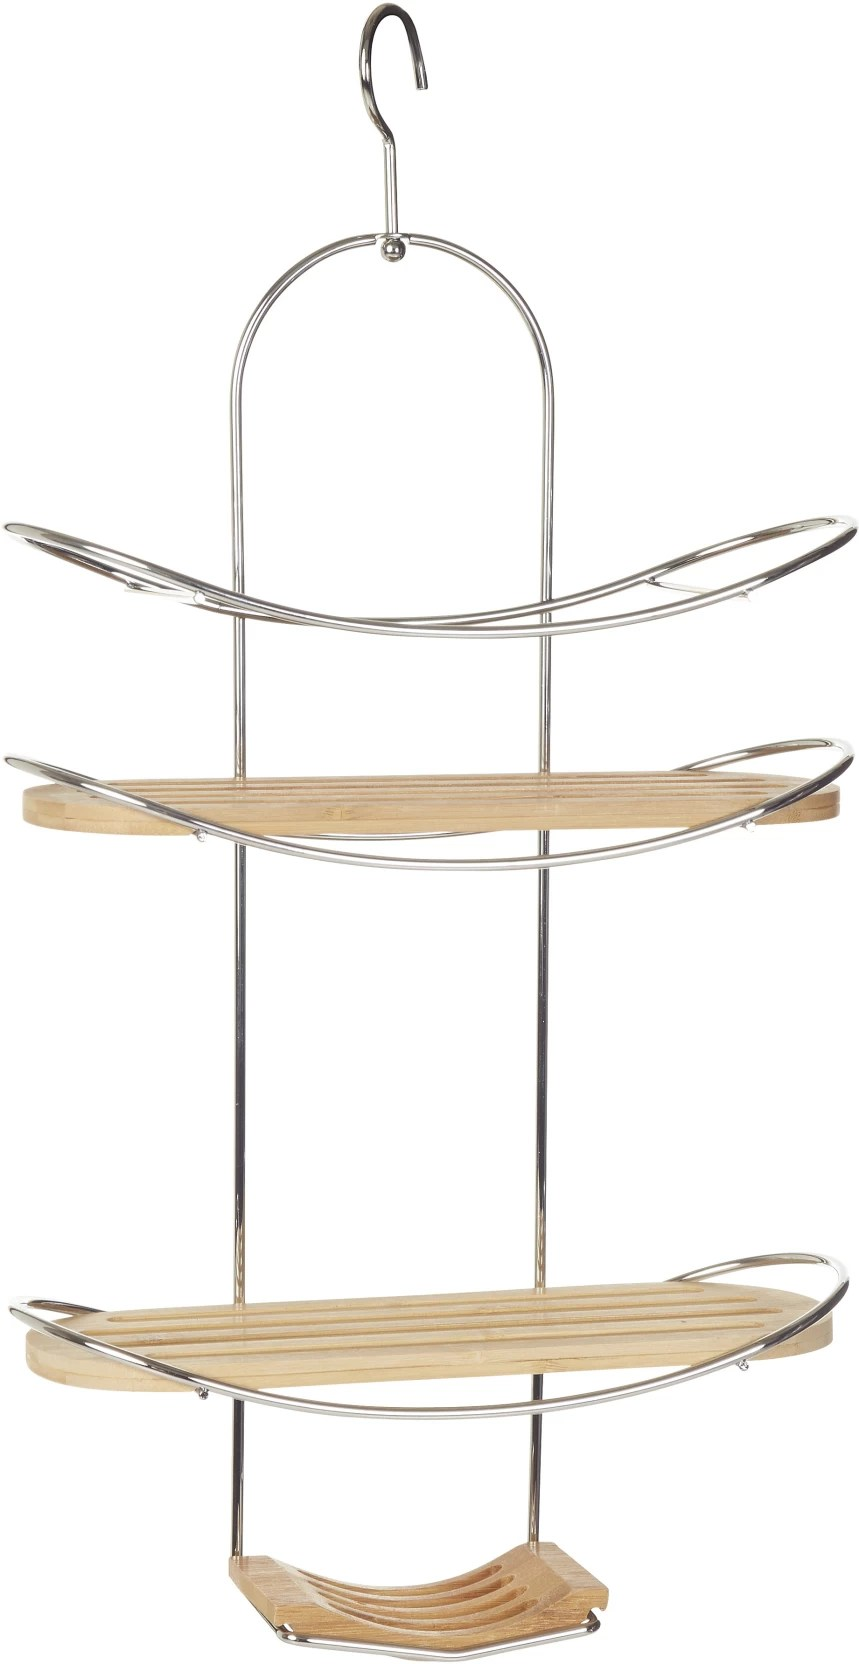 Interio Sofa Caddy Howards Shower Caddy Chrome Wooden Wall Shelf Price In India